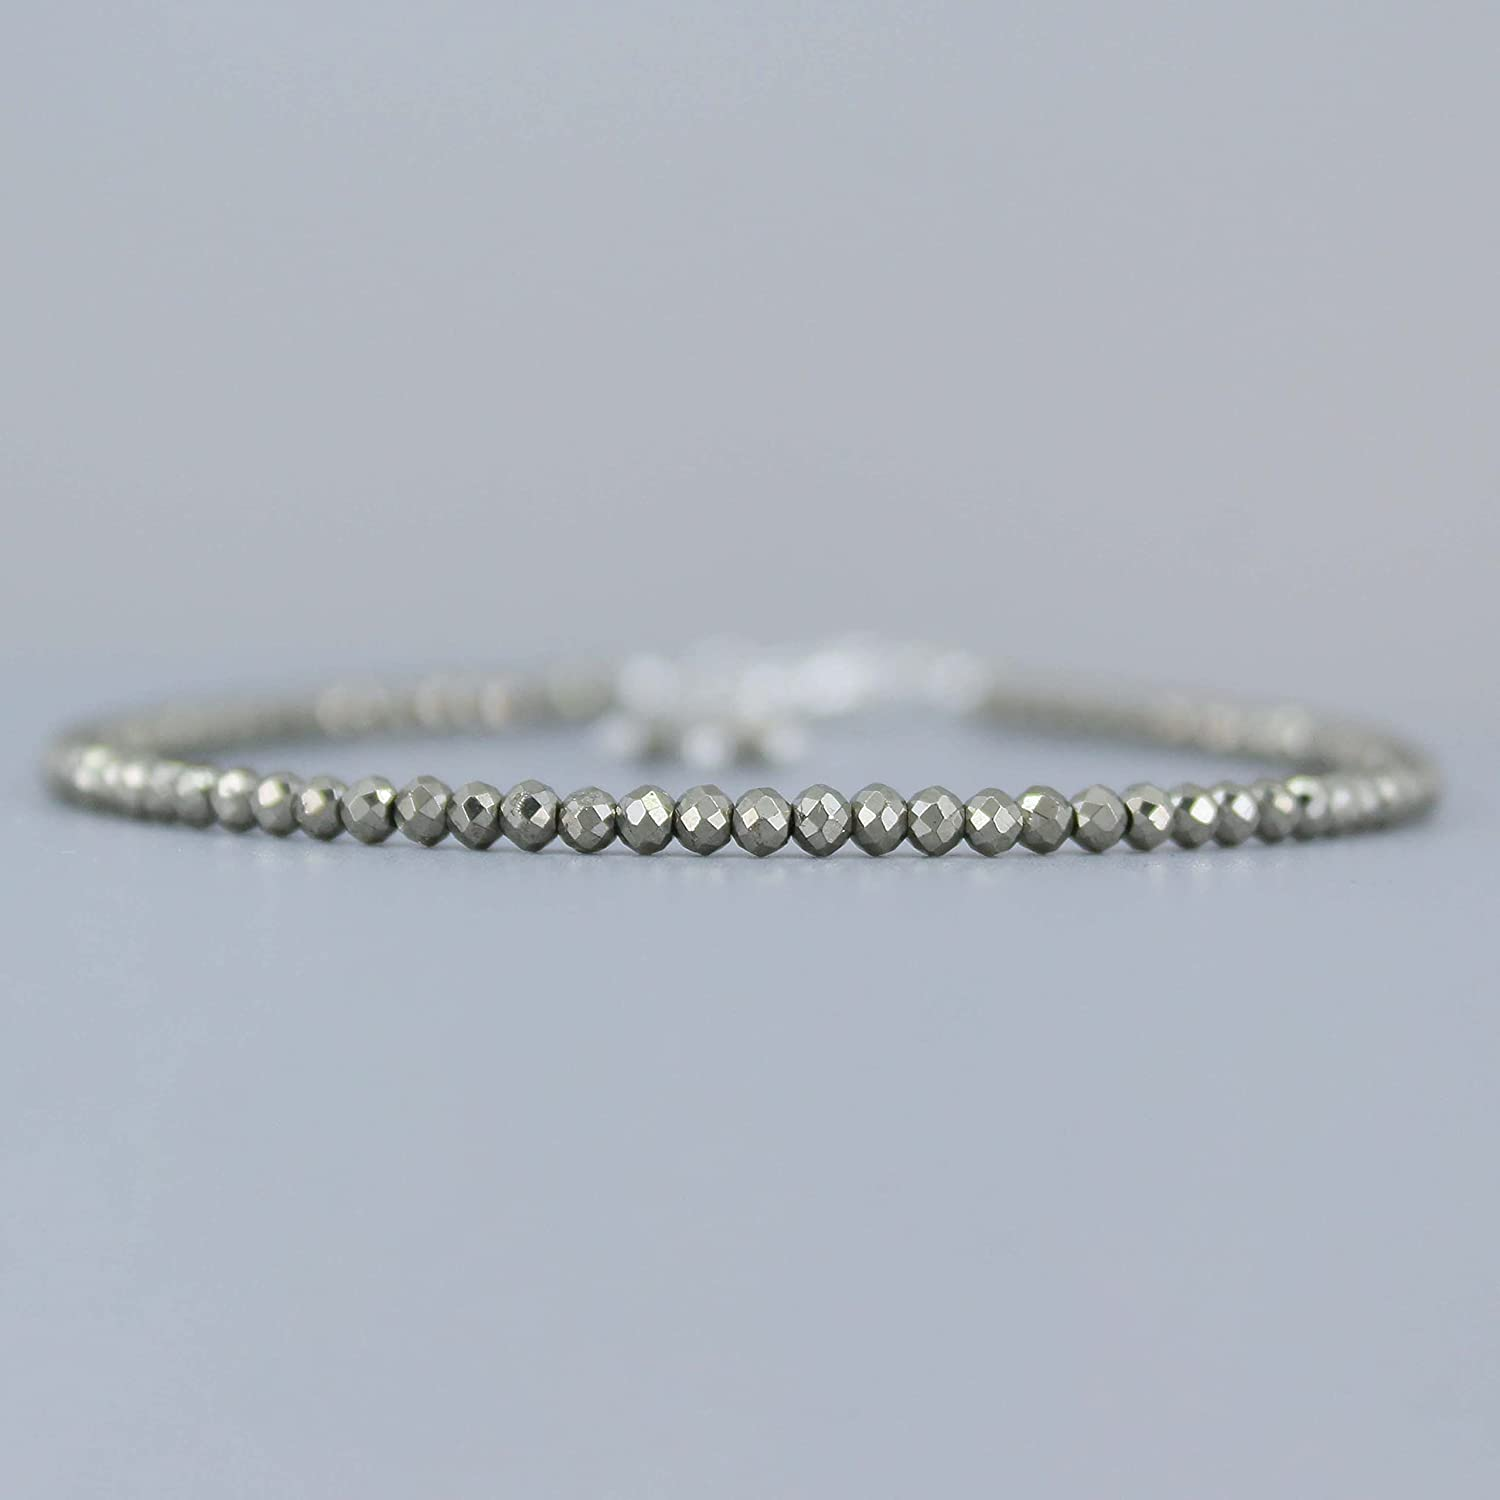 Gempires Natural Pyrite Beads Bracelet, Faceted Beads, Energy He